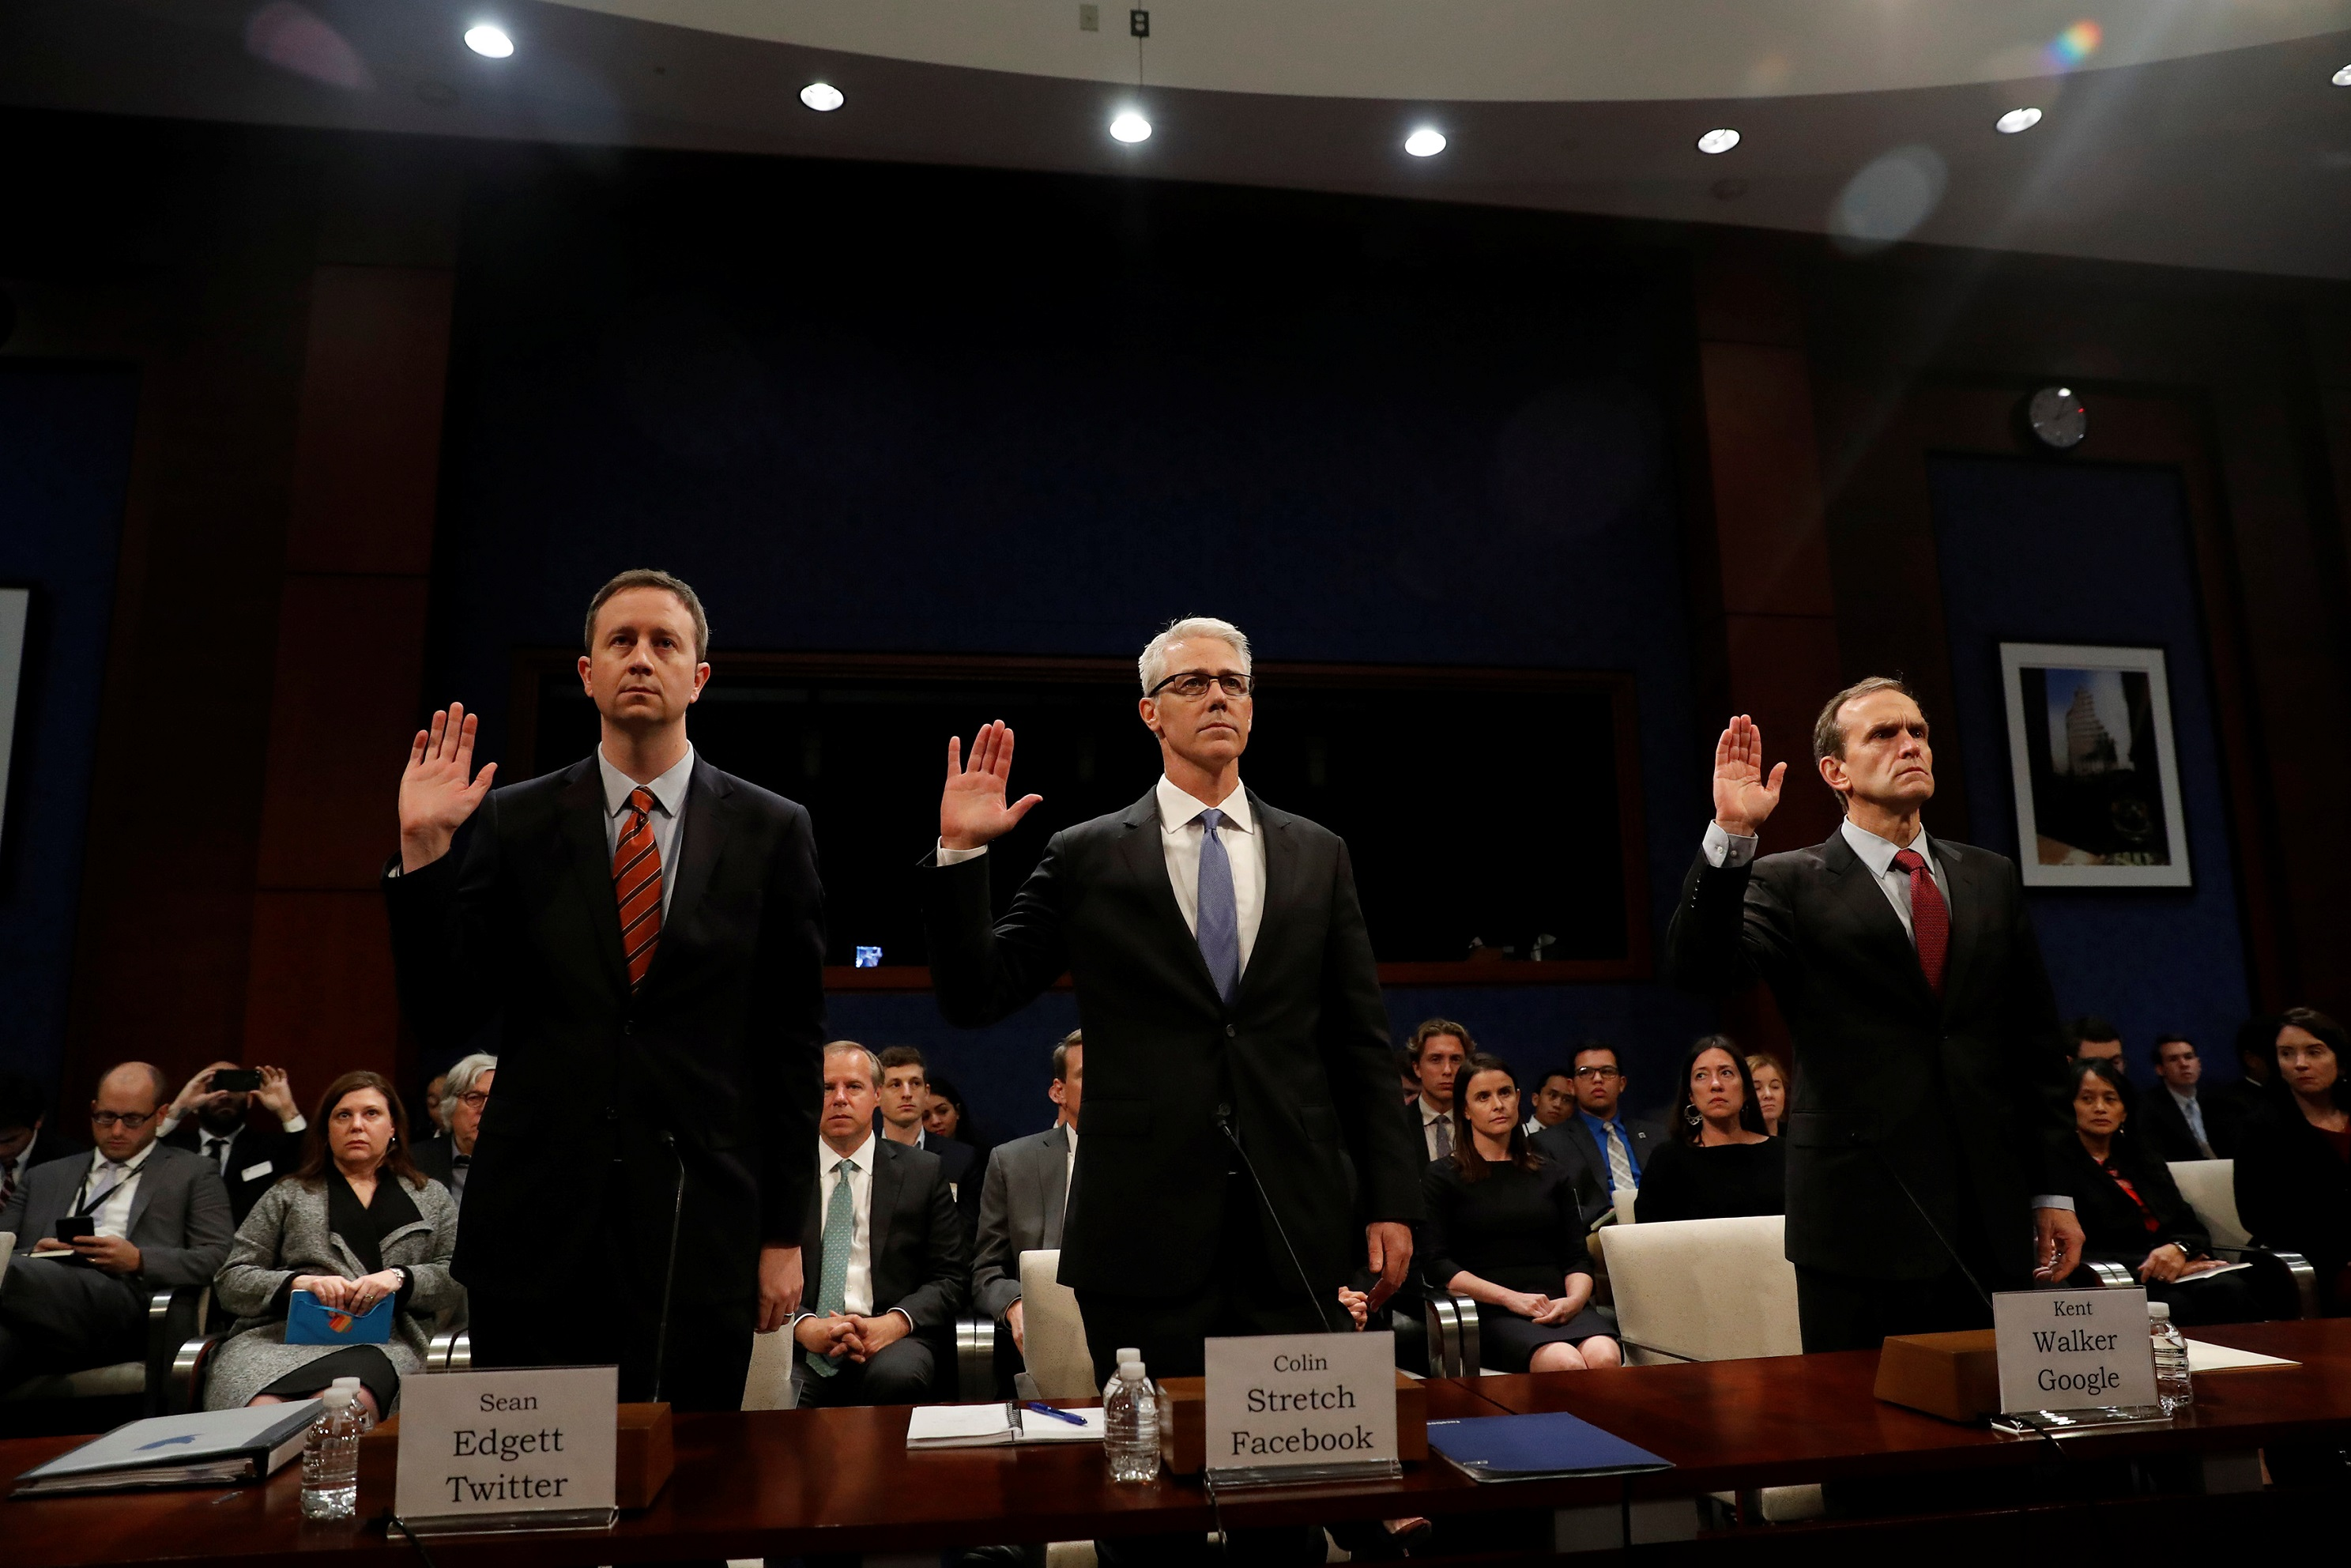 Twitter Acting General Counsel Sean Edgett, Facebook General Counsel Colin Stretch and Google Senior Vice President and General Counsel Kent Walker are sworn in before the House Intelligence Committee to answer questions related to Russian use of social media to influence U.S. elections, on Capitol Hill in Washington, U.S., November 1, 2017. REUTERS/Aaron P. Bernstein - RC16D2B0FBC0